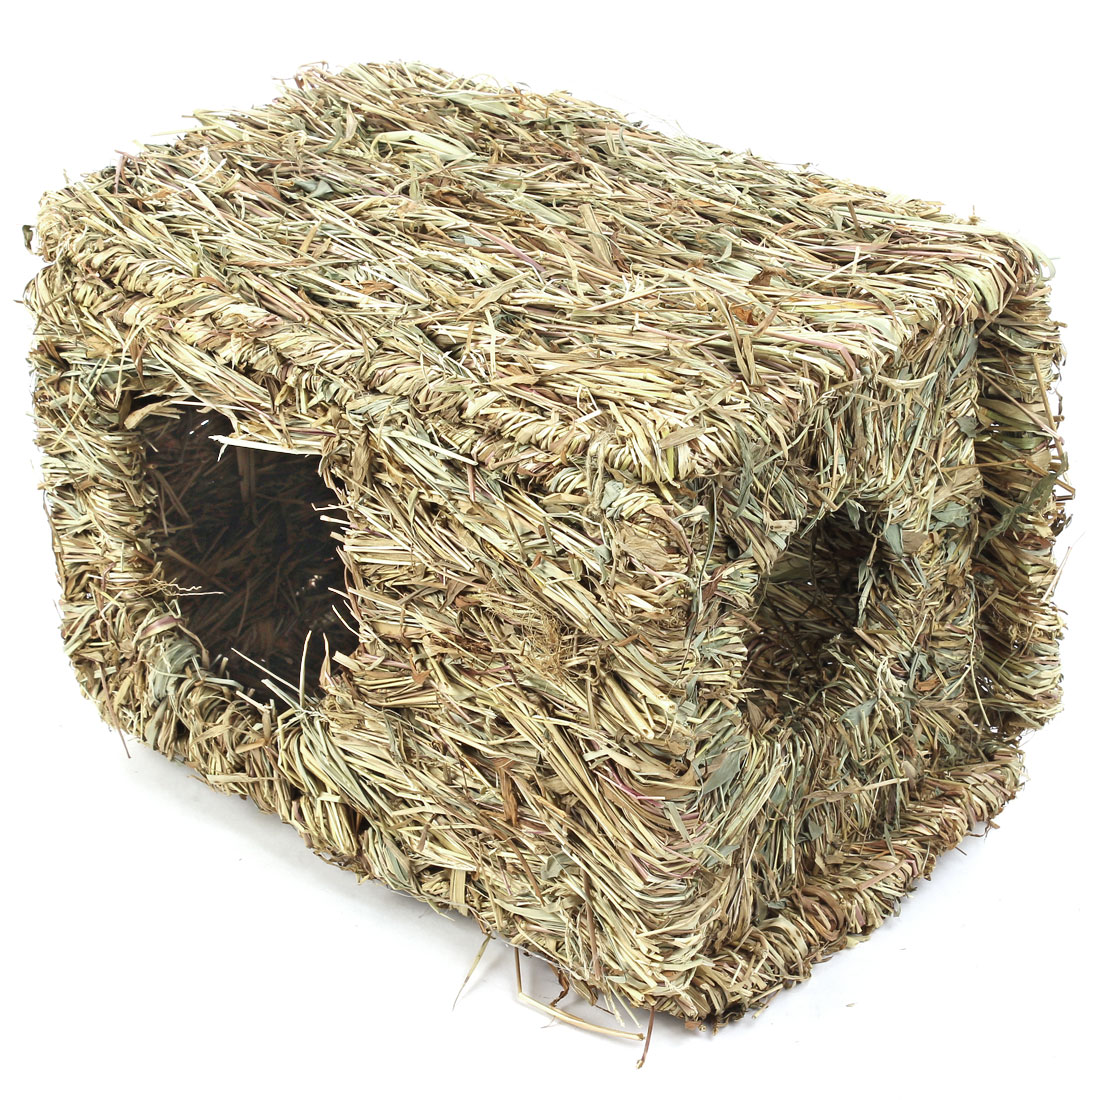 Artificial Straw Knitted Woven Small Pet Animals Hamster Nest House Home Cage by